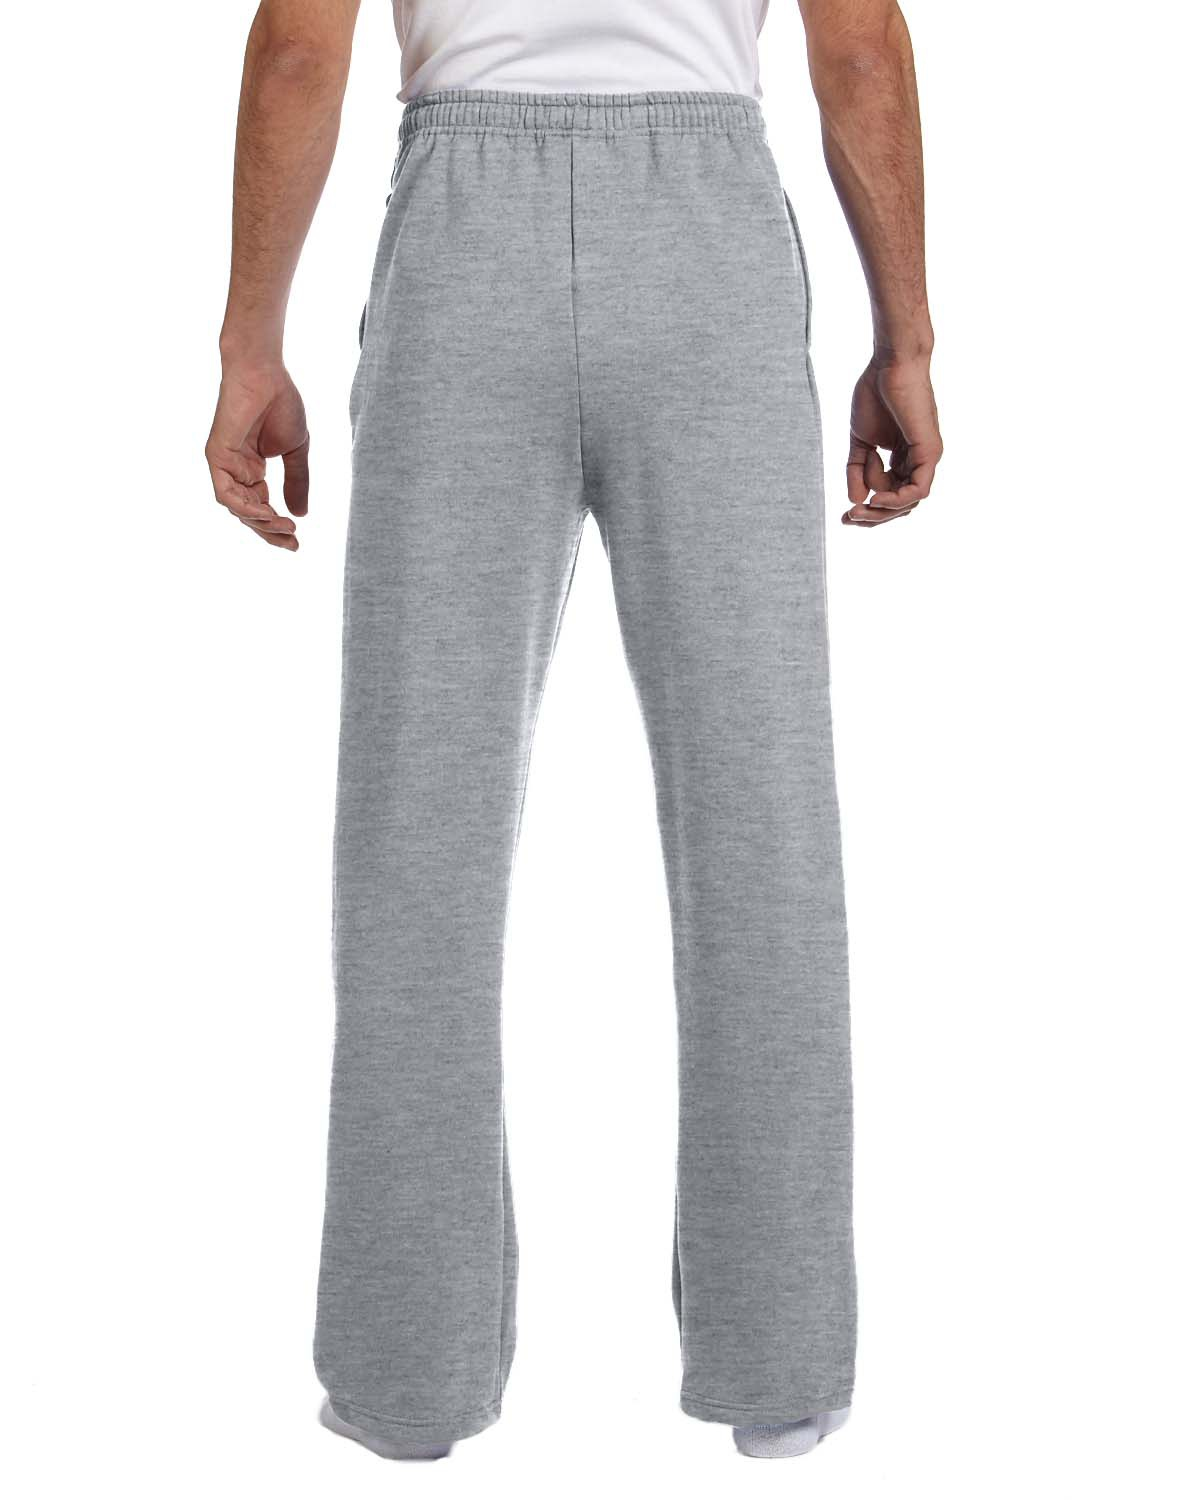 'Jerzees 974MP Adult NuBlend Open-Bottom Fleece Sweatpants'